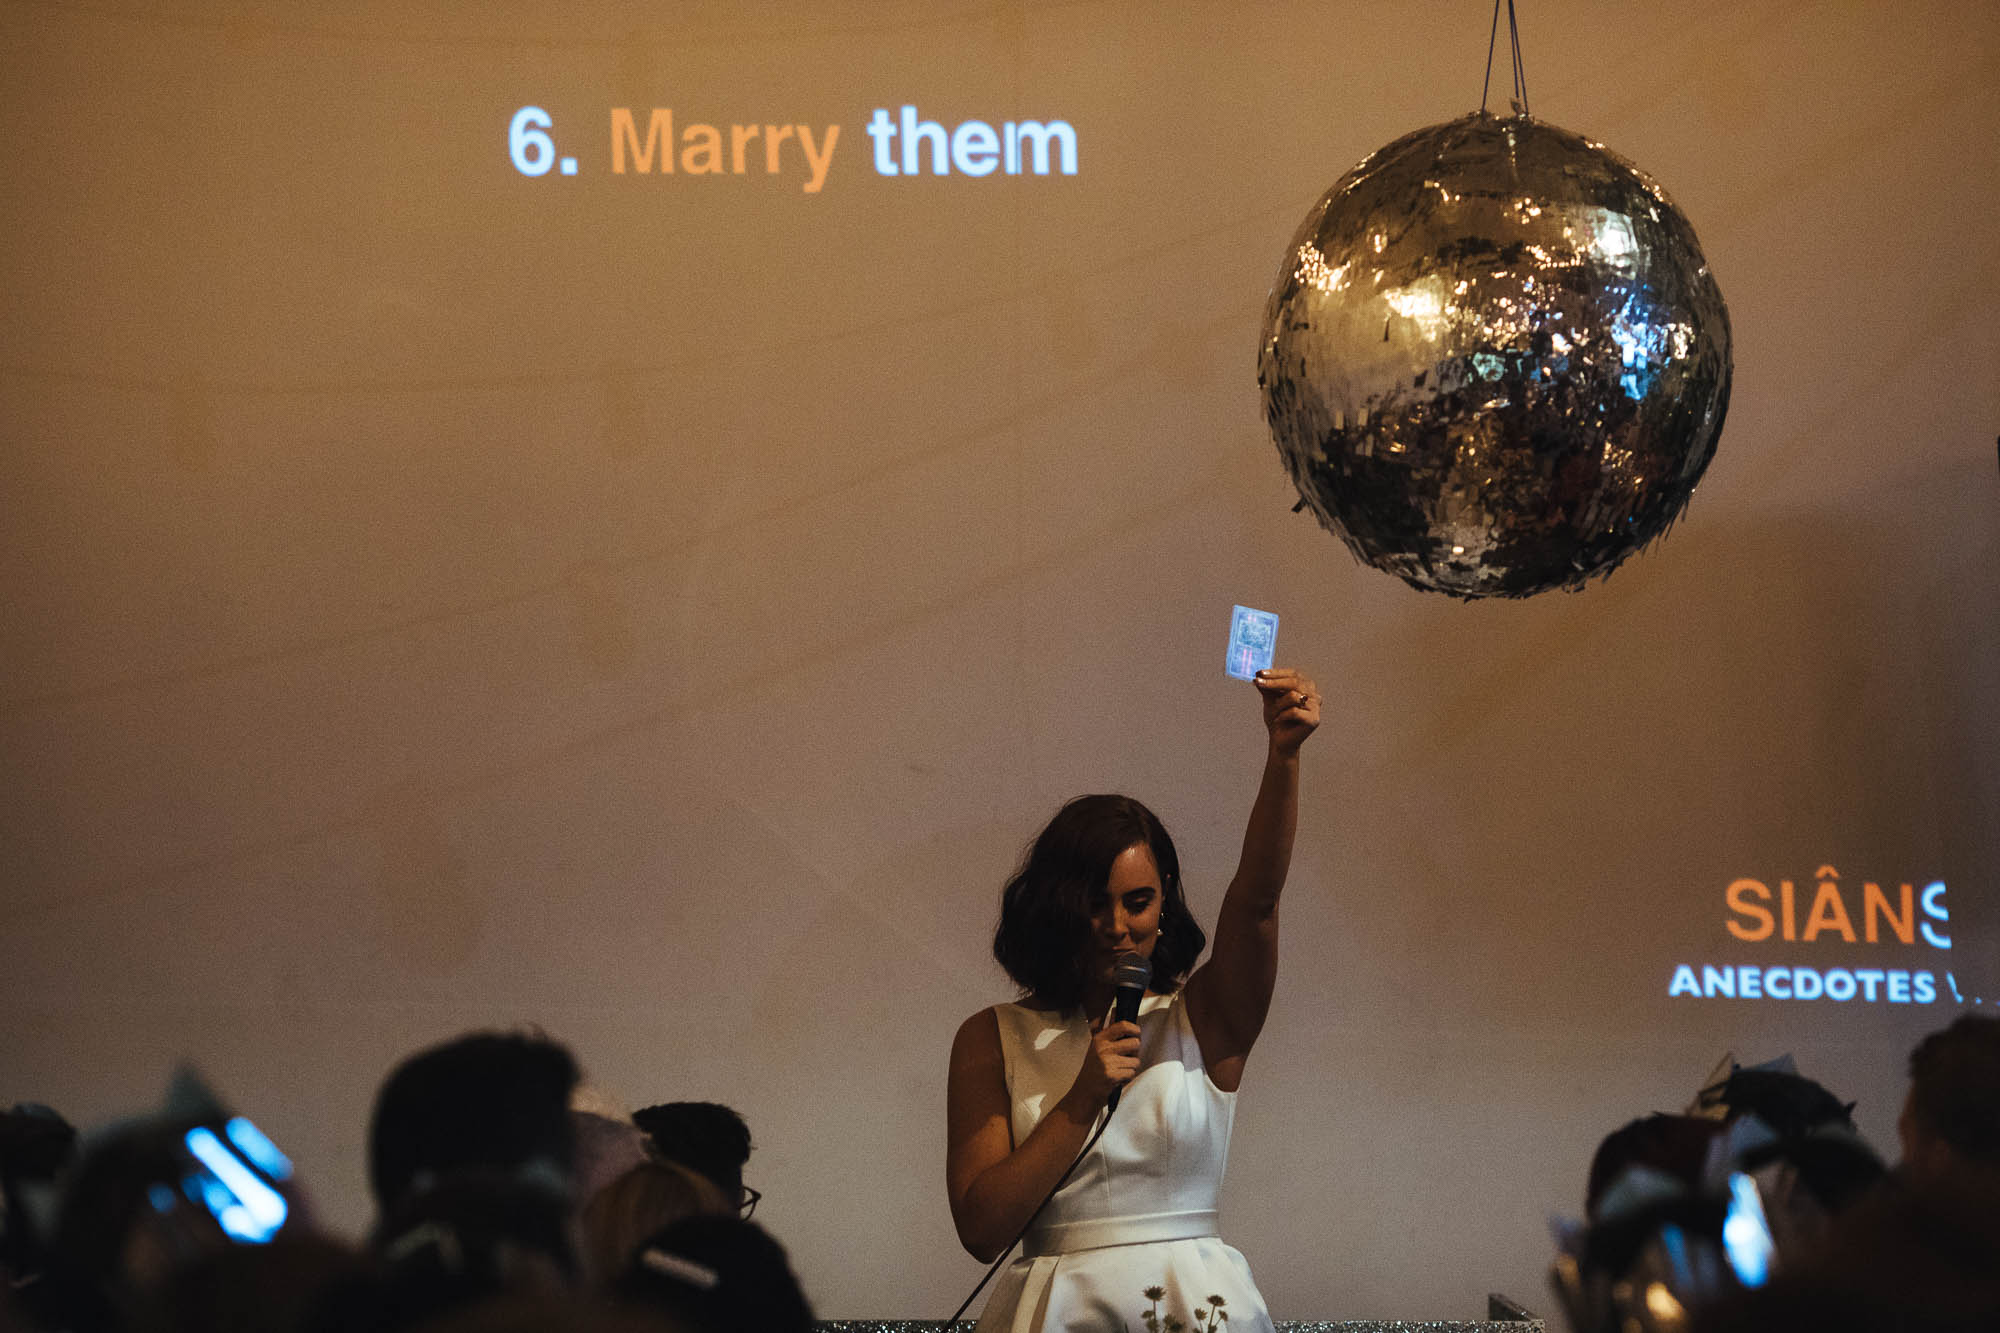 Bride's wedding speech ideas